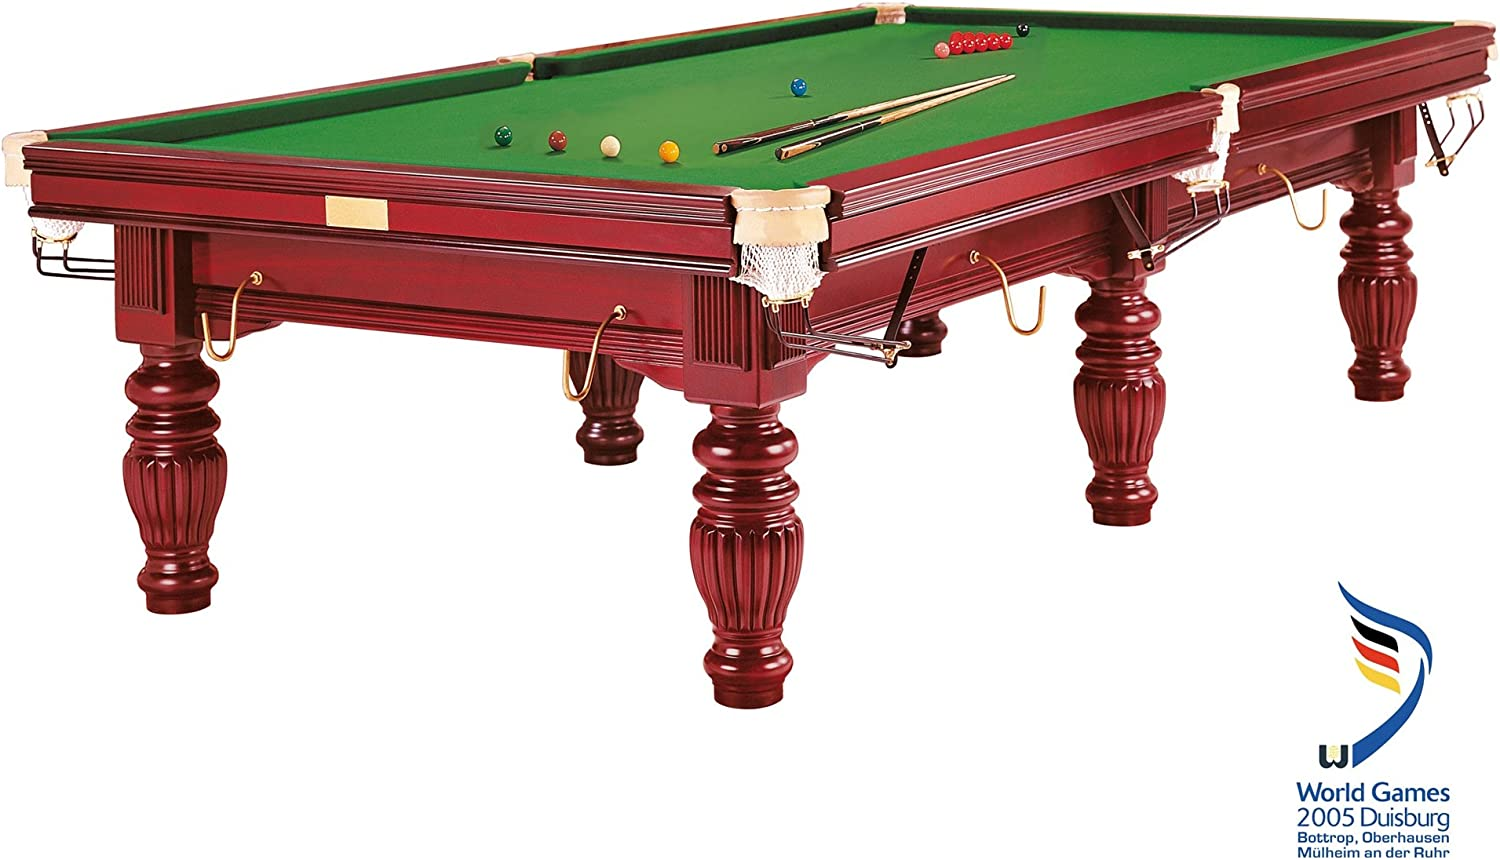 Mesa de Billar Dynamic Prince, 9 ft. (Soporte), Caoba, Snooker ...